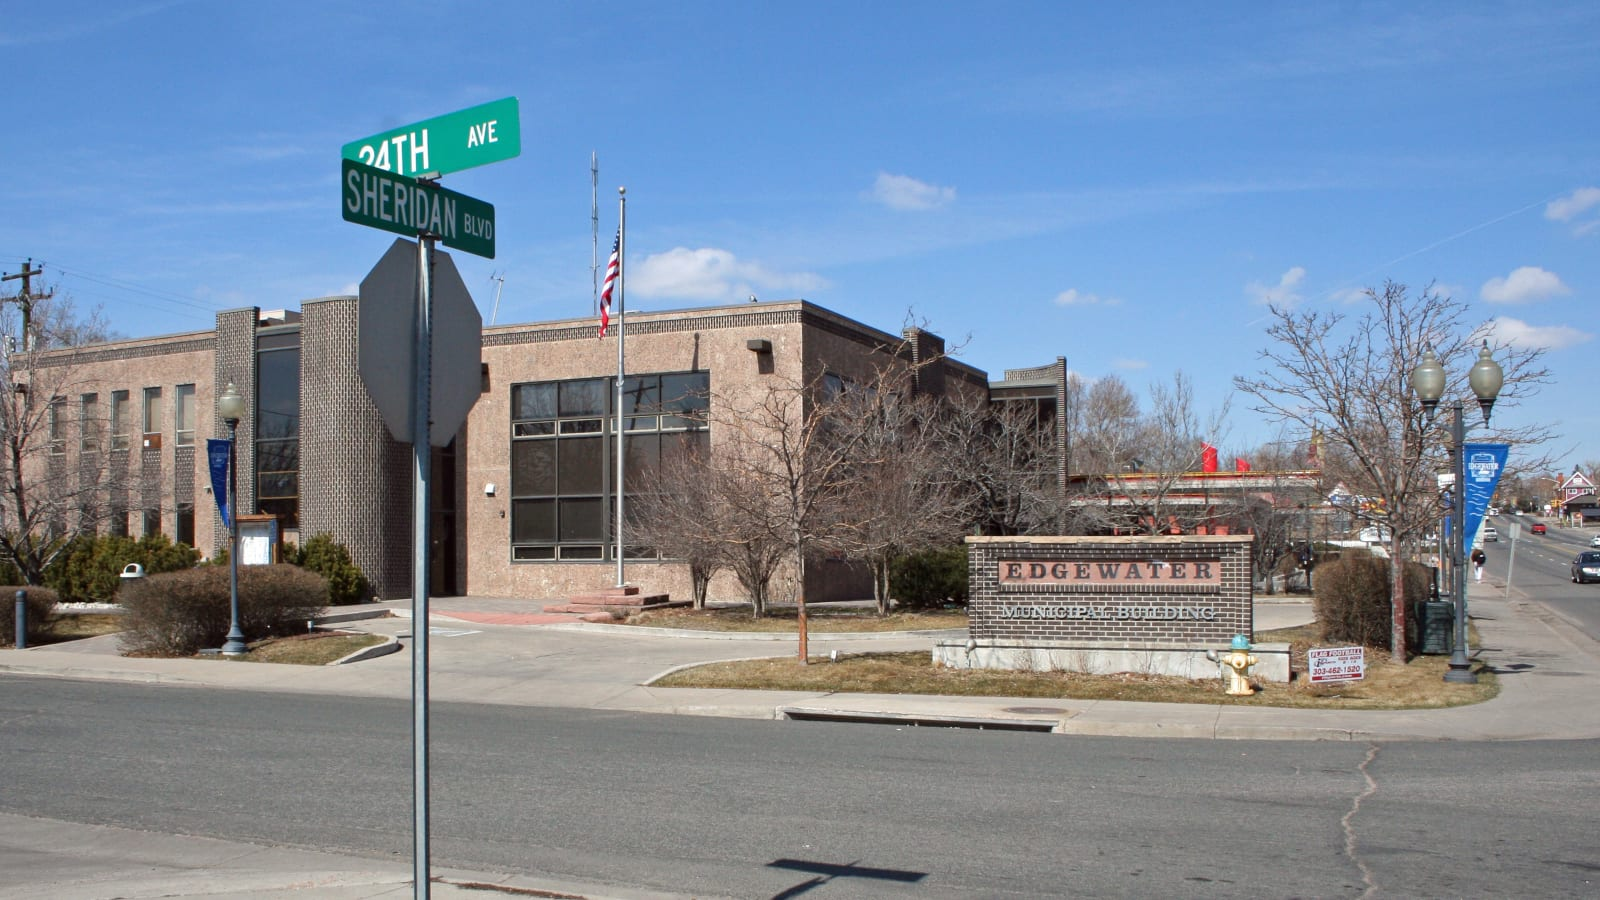 Edgewater Colorado Municipal Building